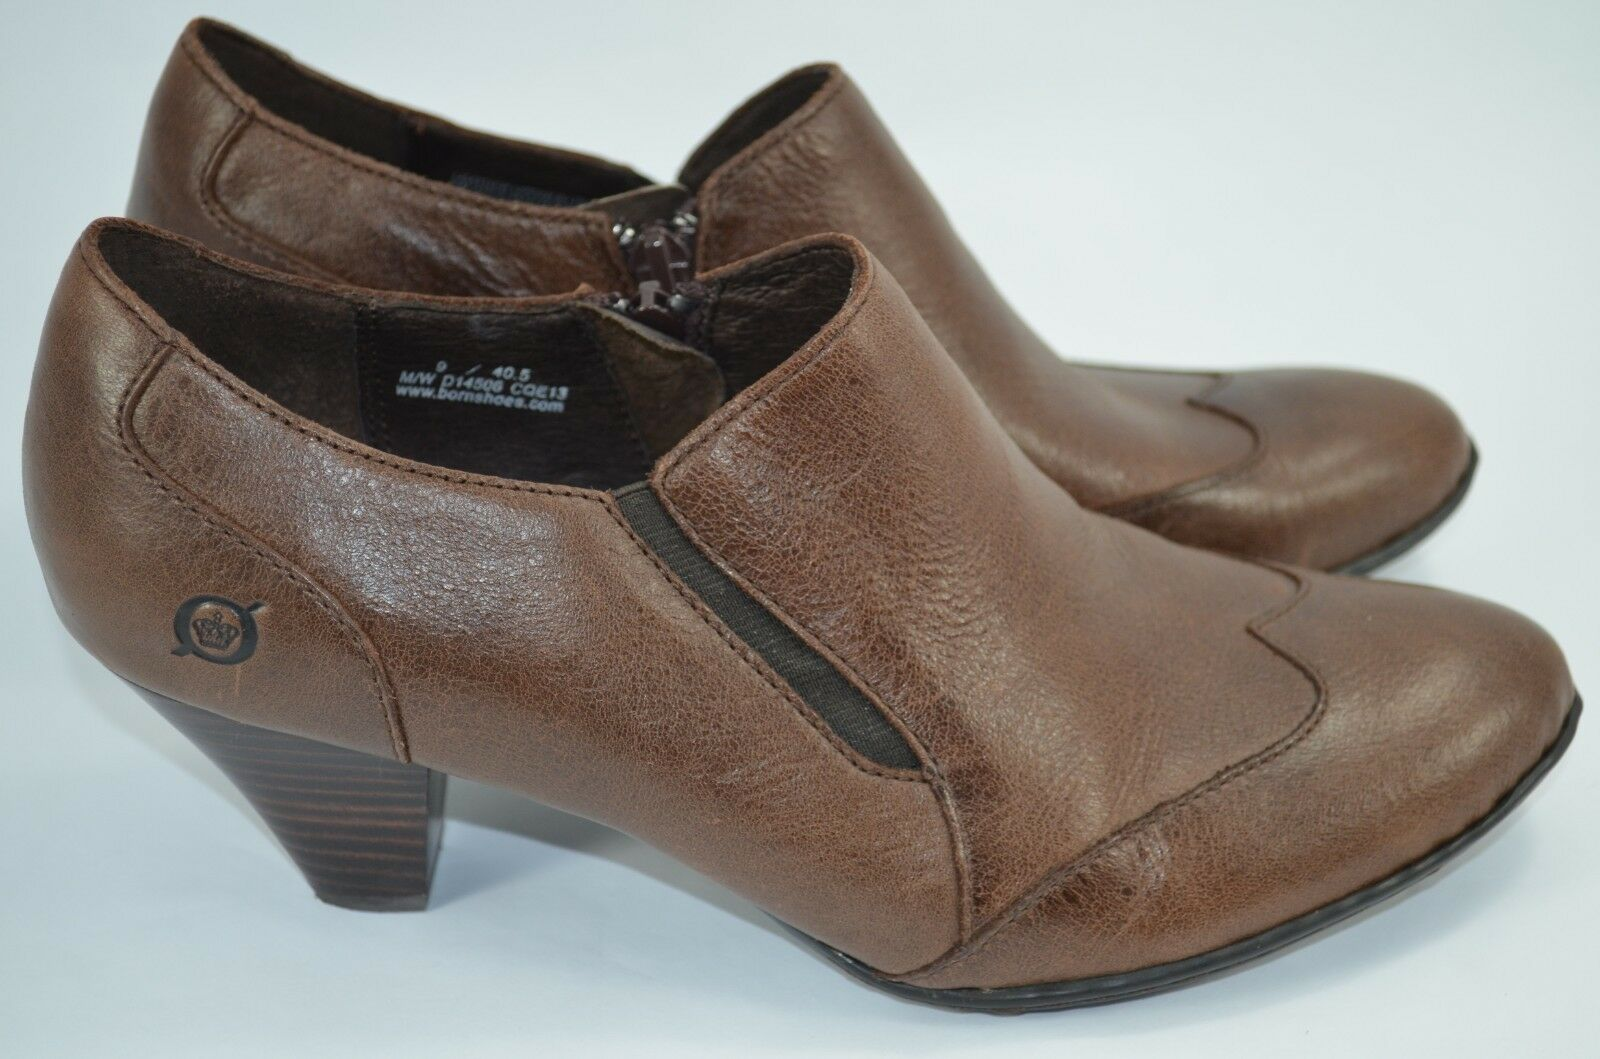 Born Womens Wing Tip Side Zip Brown Heels Chelsea Ankle Booties D14506 Size US 9